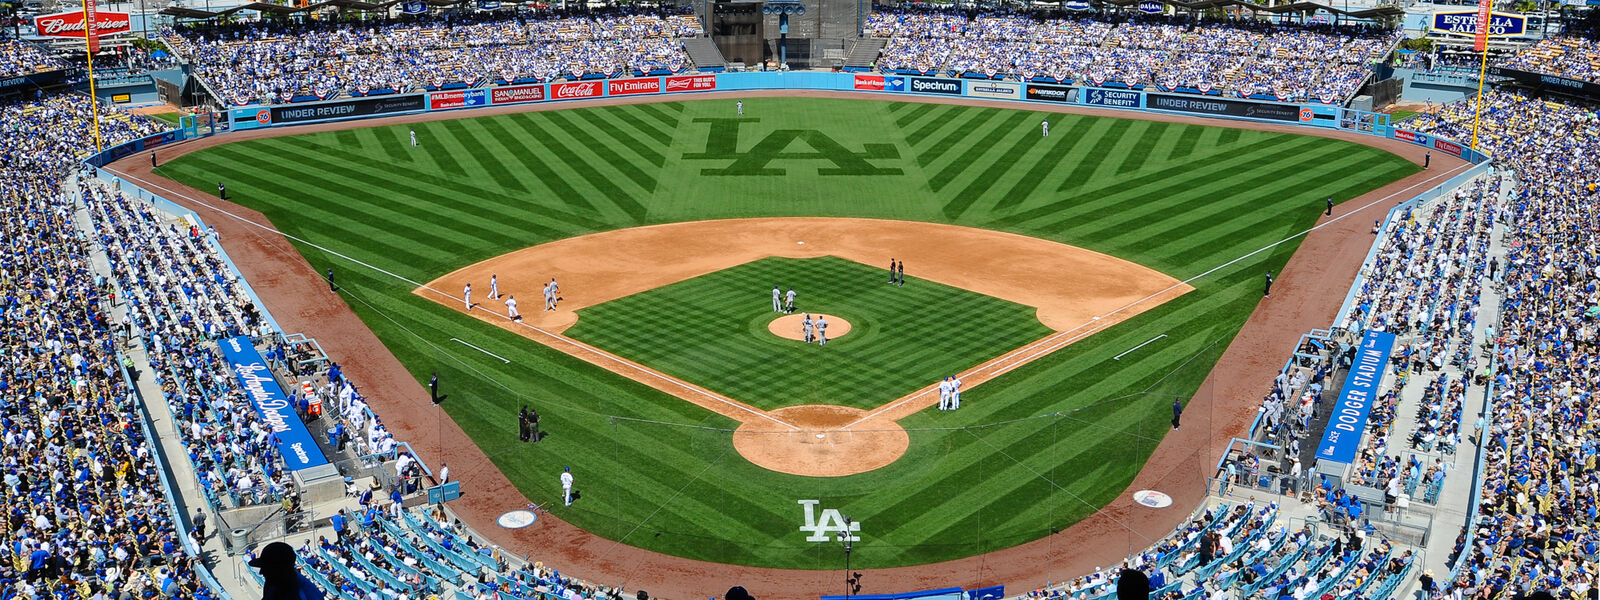 Miami Marlins at Los Angeles Dodgers